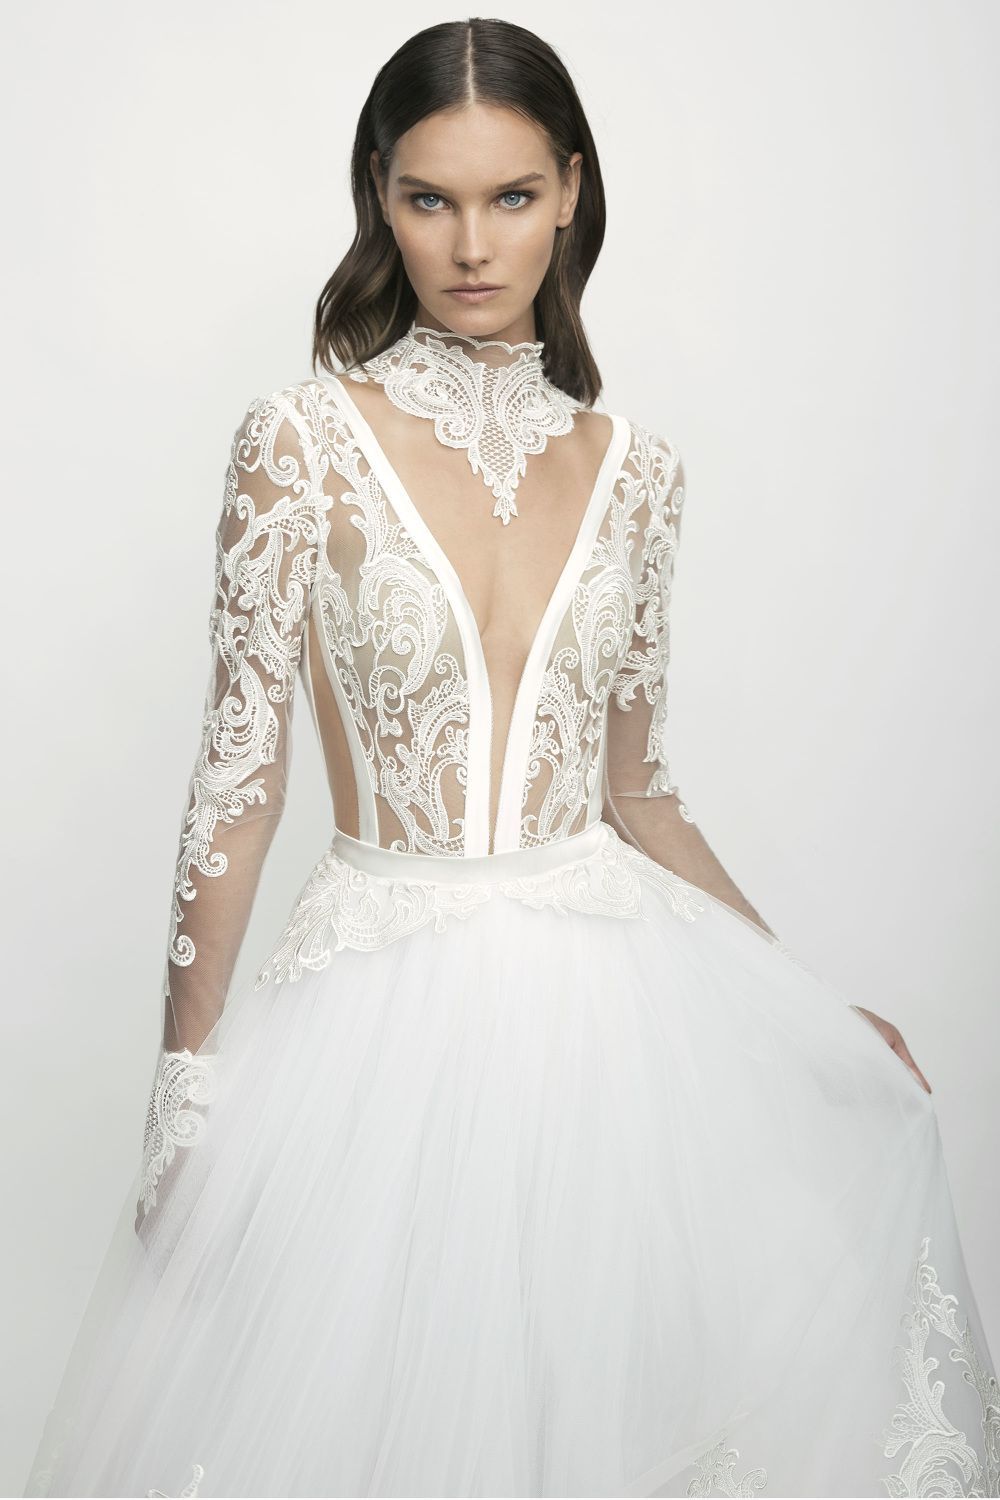 NYC 2017 - LIOR CHARCHY | ~ Wedding Gown pt2 ~ | Pinterest | Wedding ...